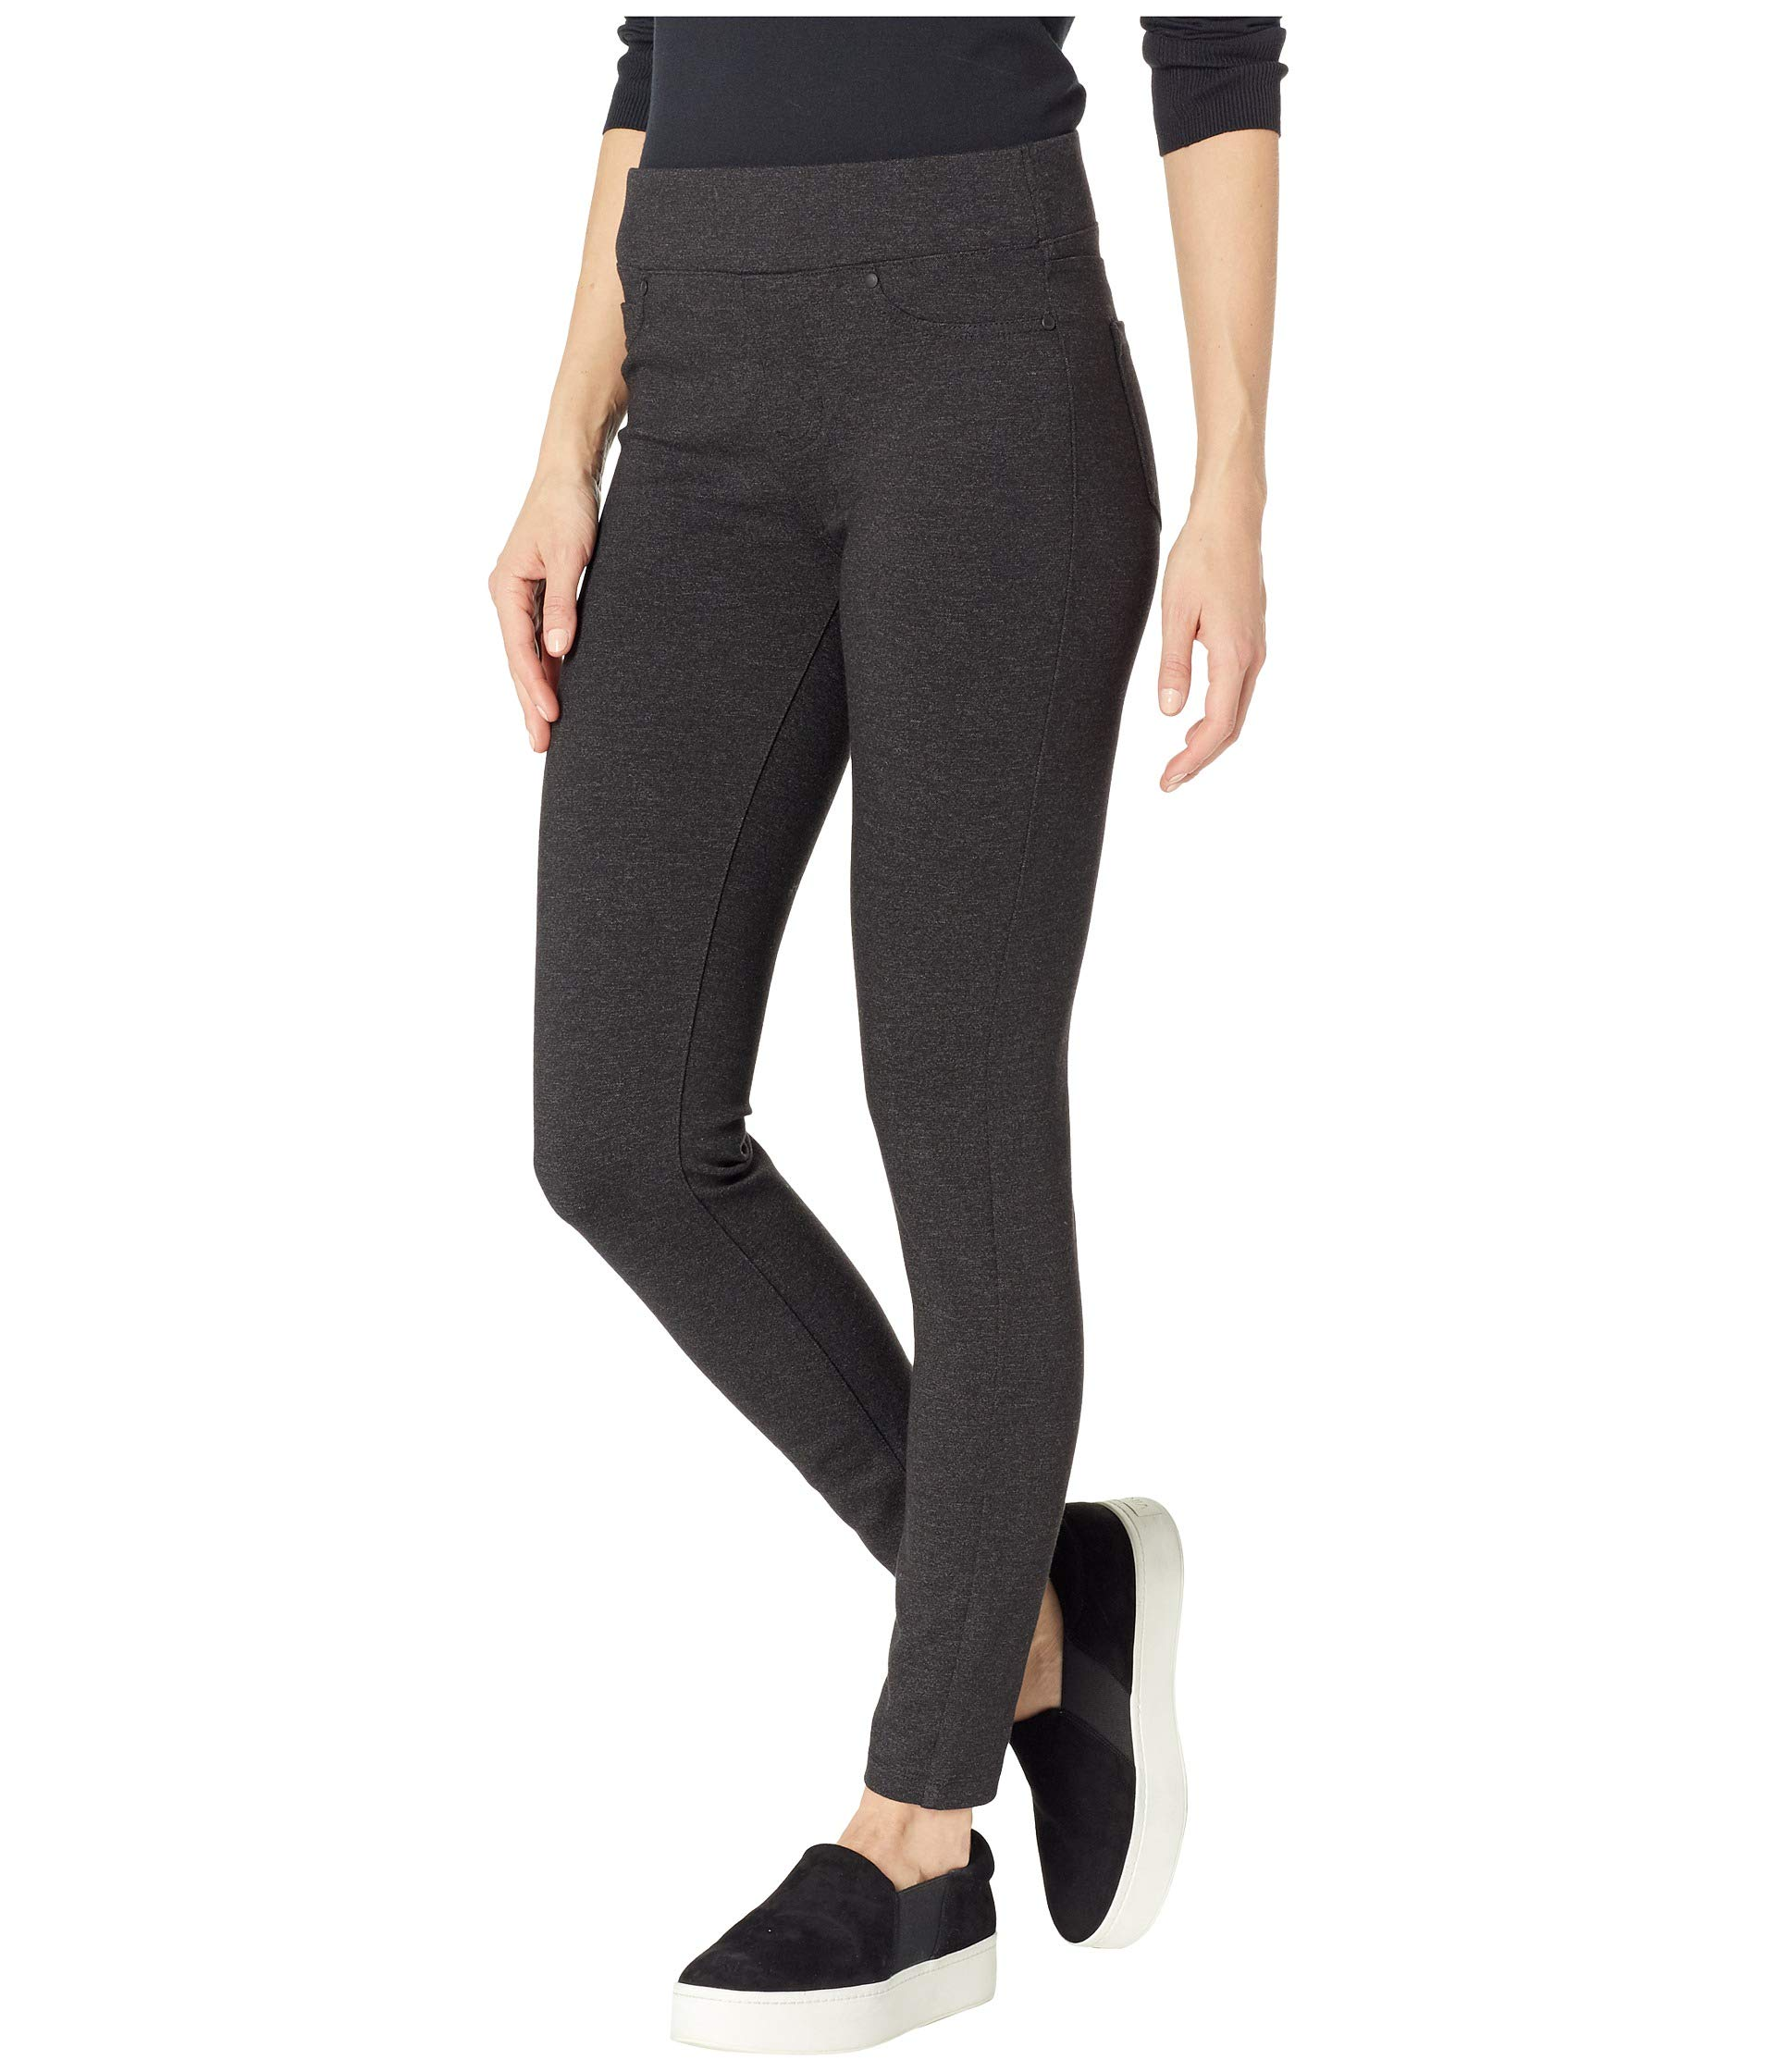 Knit Leggings on Ponte Liverpool Sienna Charcoal In Pull Marled q0w6Ht